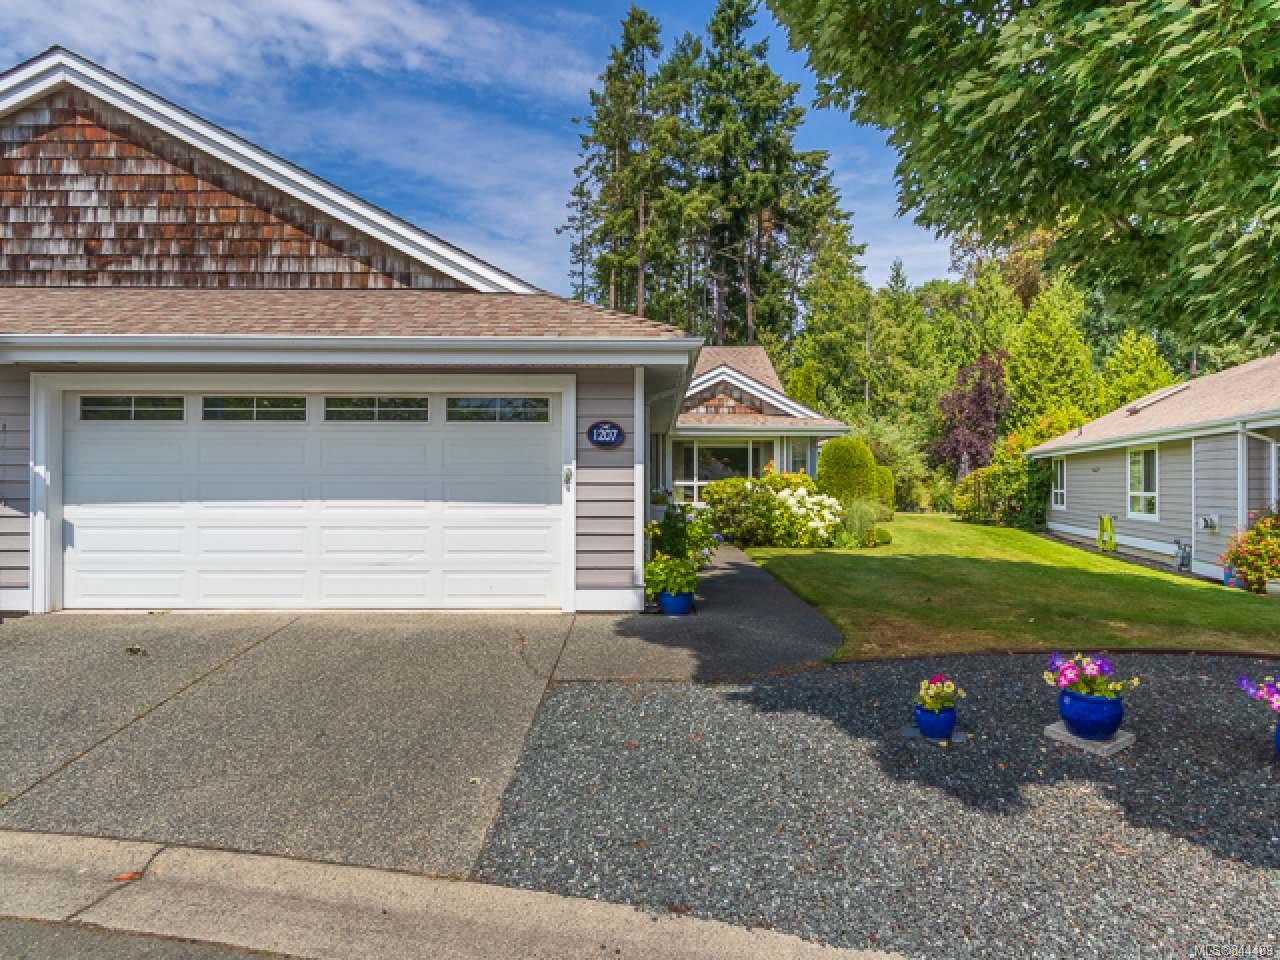 FEATURED LISTING: 1207 Saturna Dr PARKSVILLE